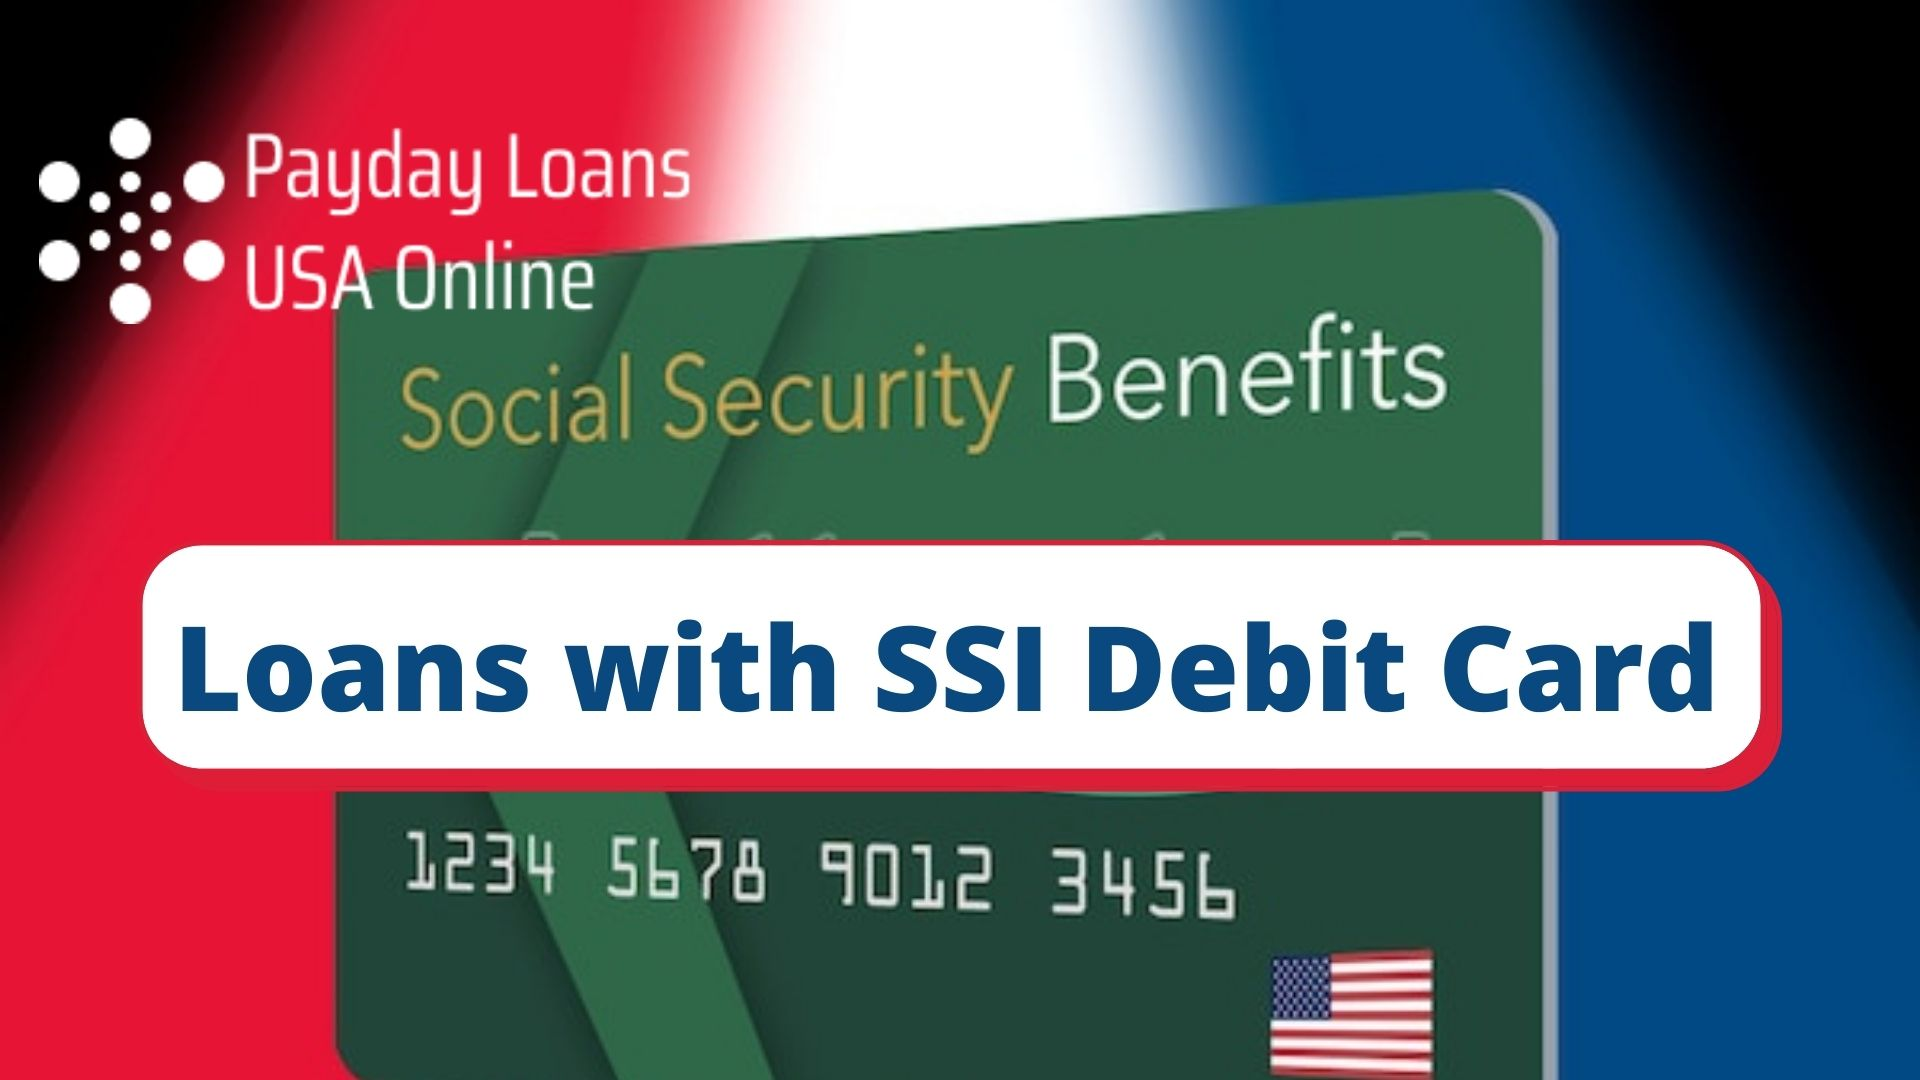 Payday Loans on SSI debit card